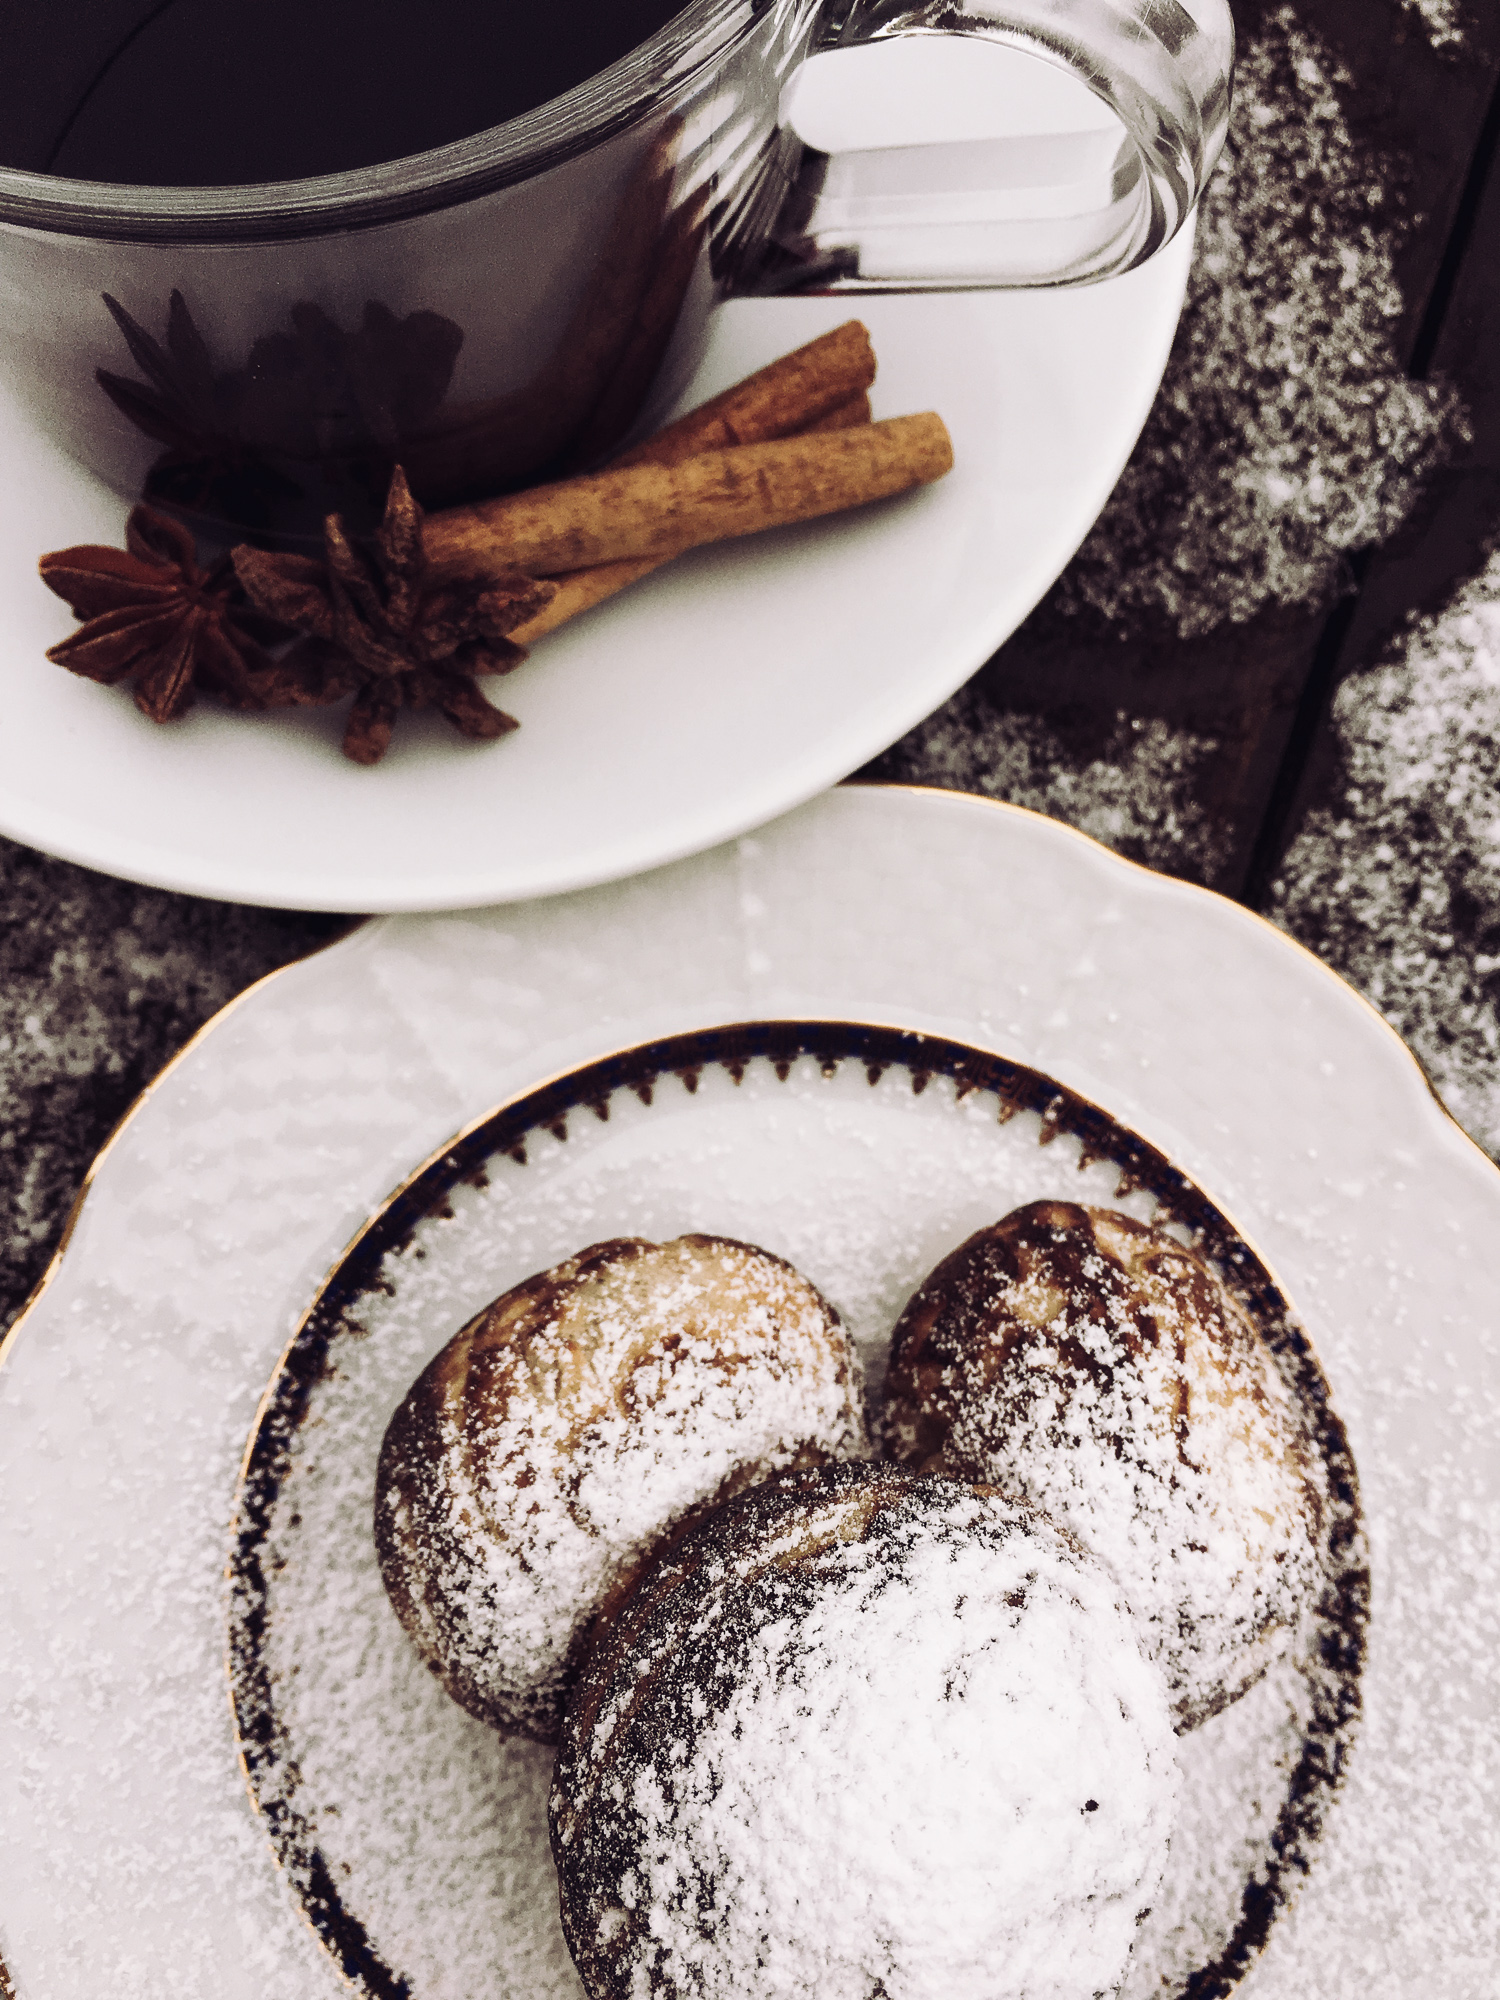 æbleskiver and mulled wine